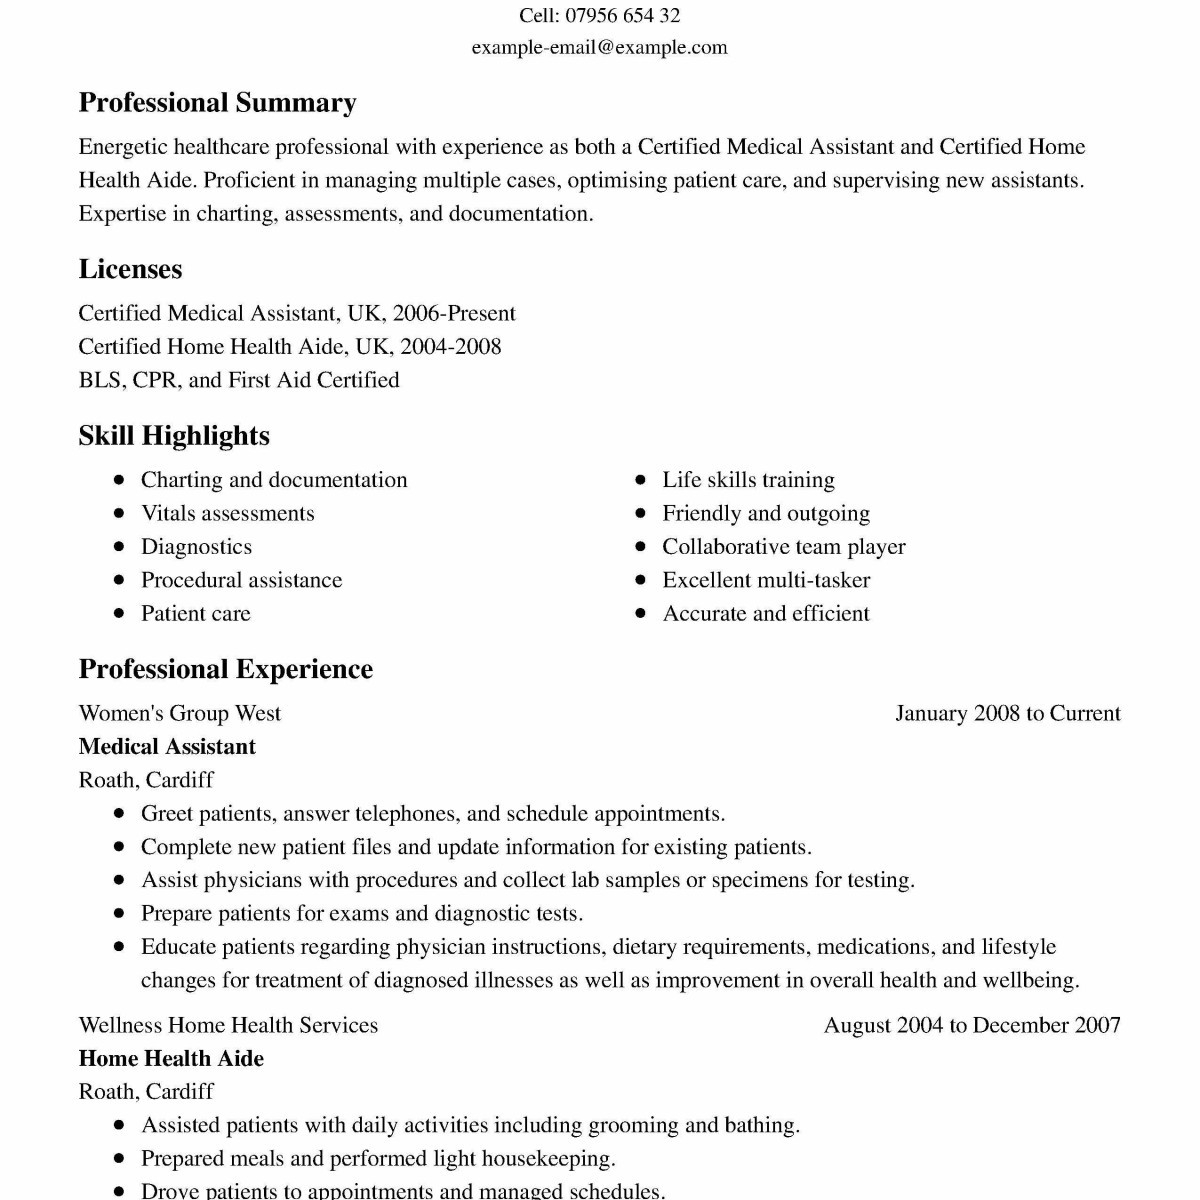 Medical assistant Summary Resume - Resume Medical assistant Examples Charming Fresh Examples Resumes